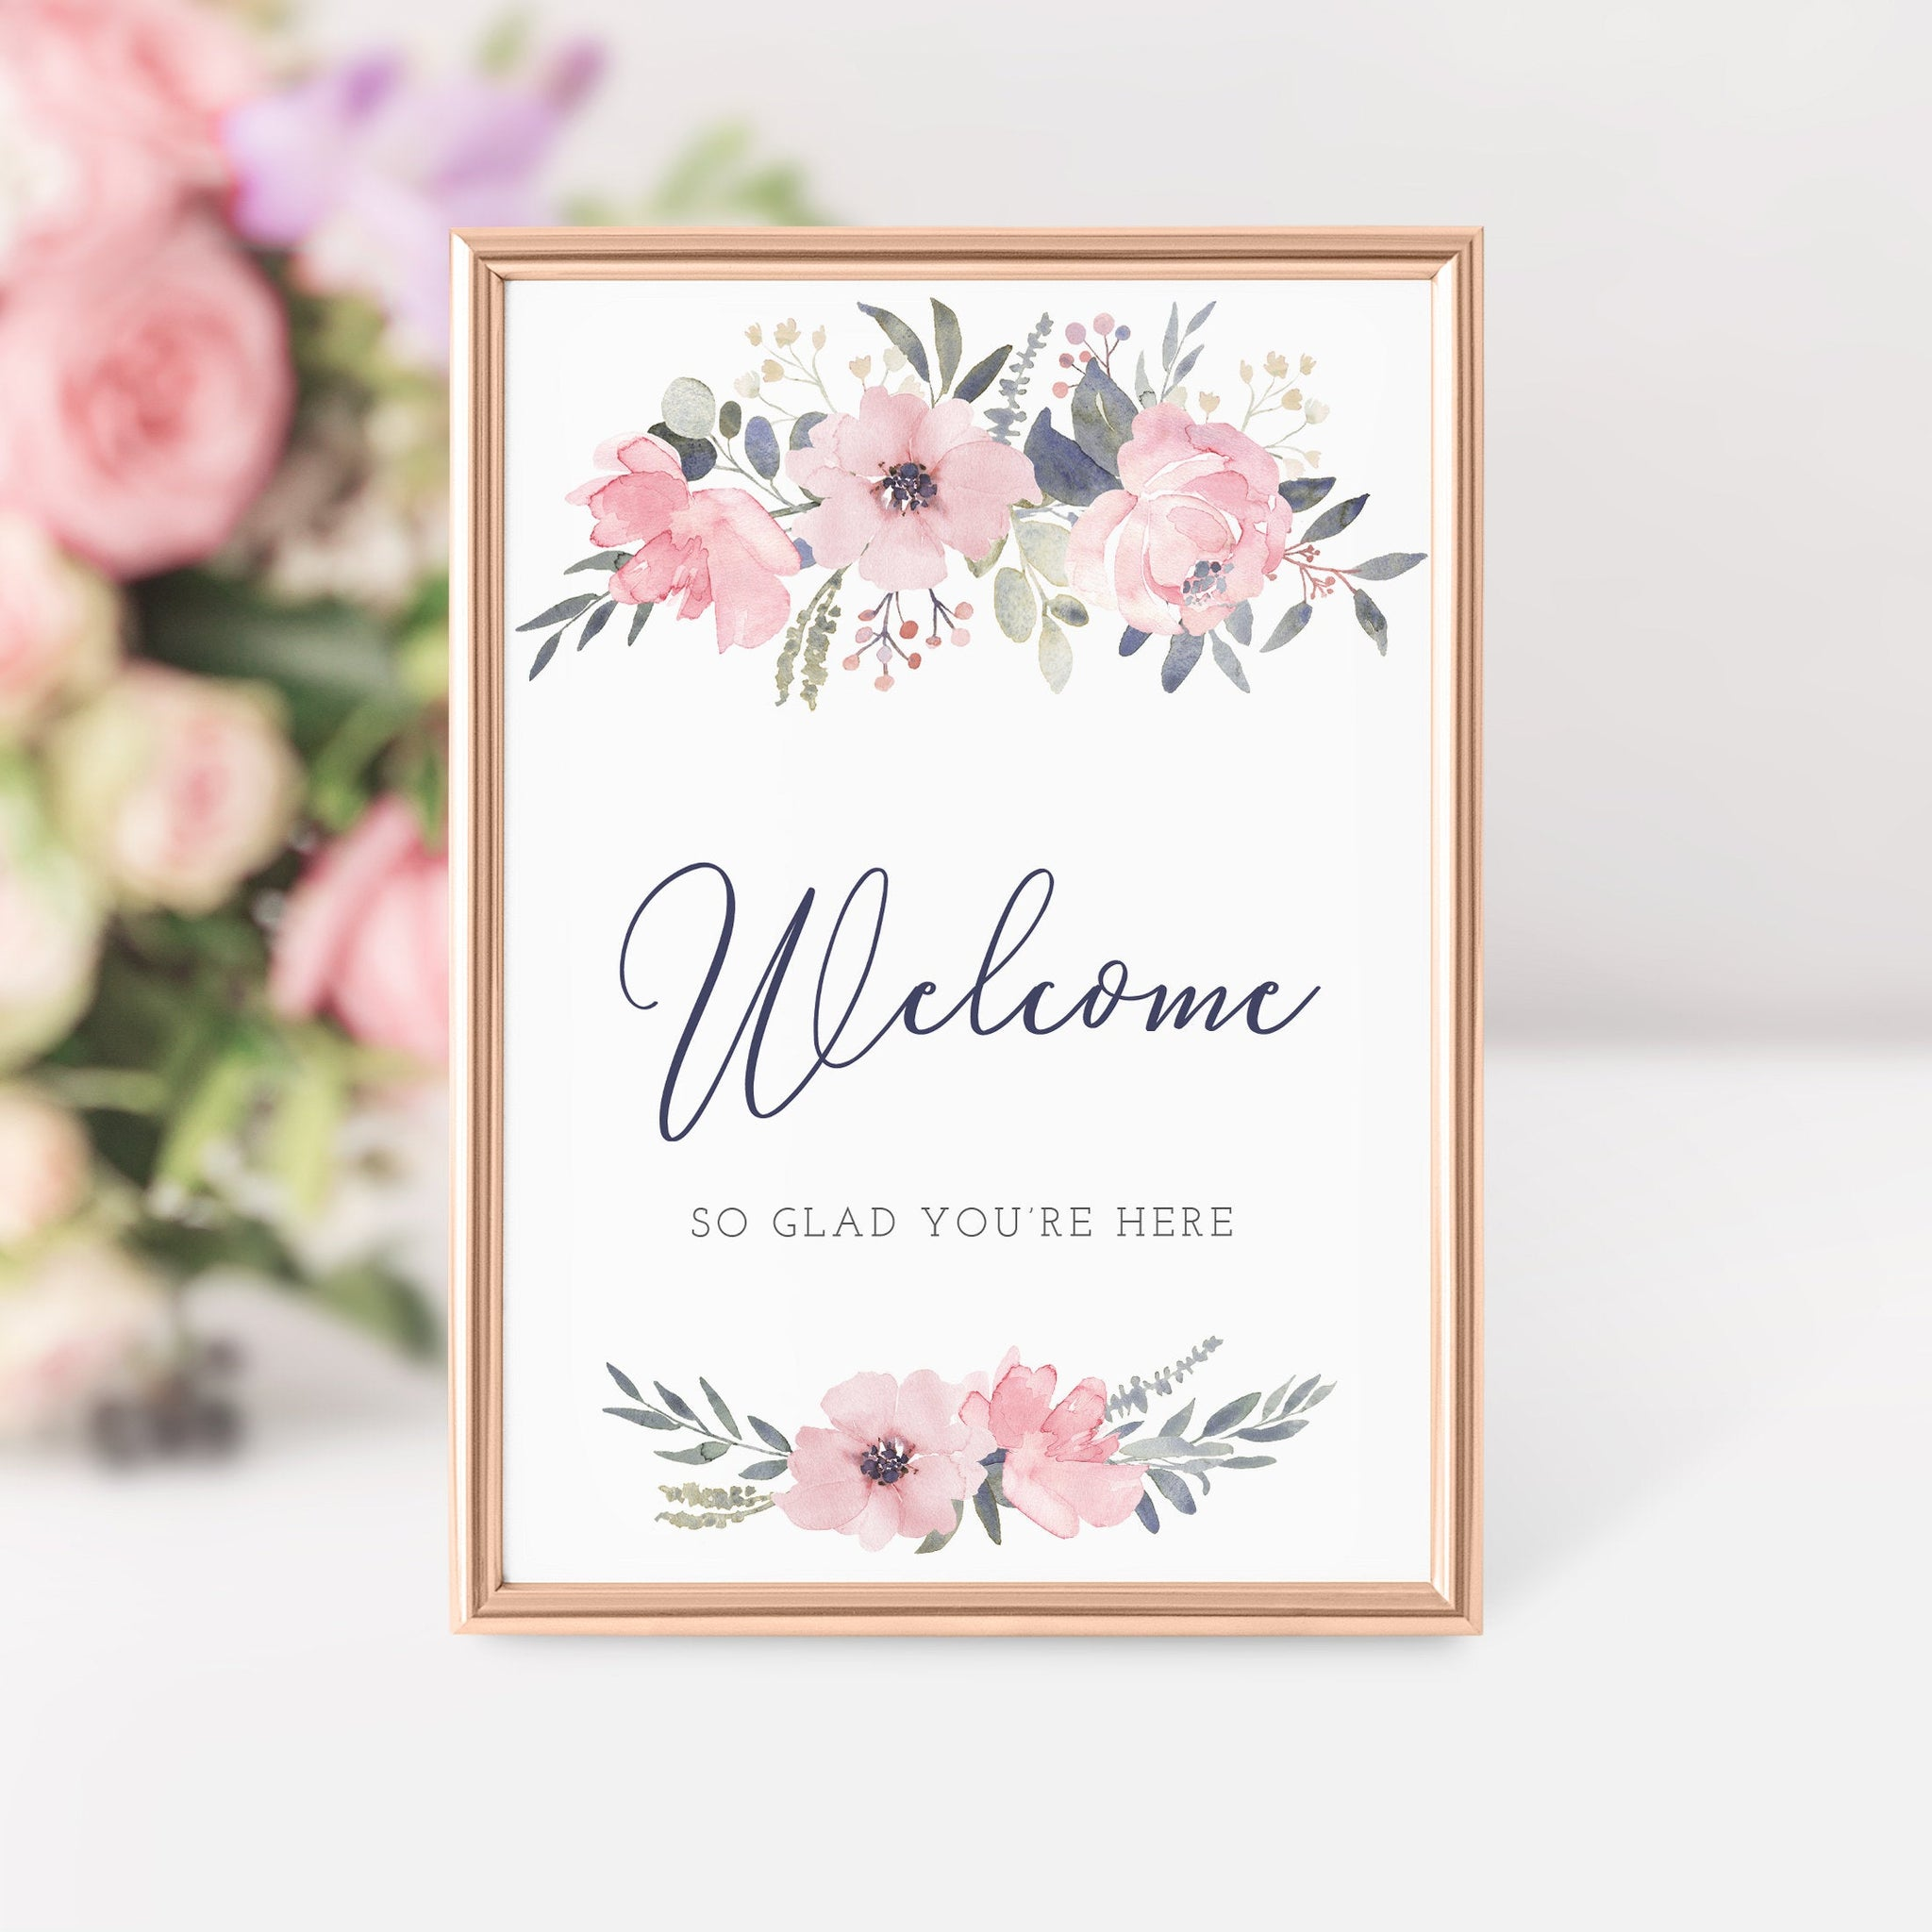 Navy And Blush Floral Printable Welcome Sign INSTANT DOWNLOAD, Birthday, Bridal Shower, Baby Shower, Wedding Decorations Supplies - NB100 - @PlumPolkaDot